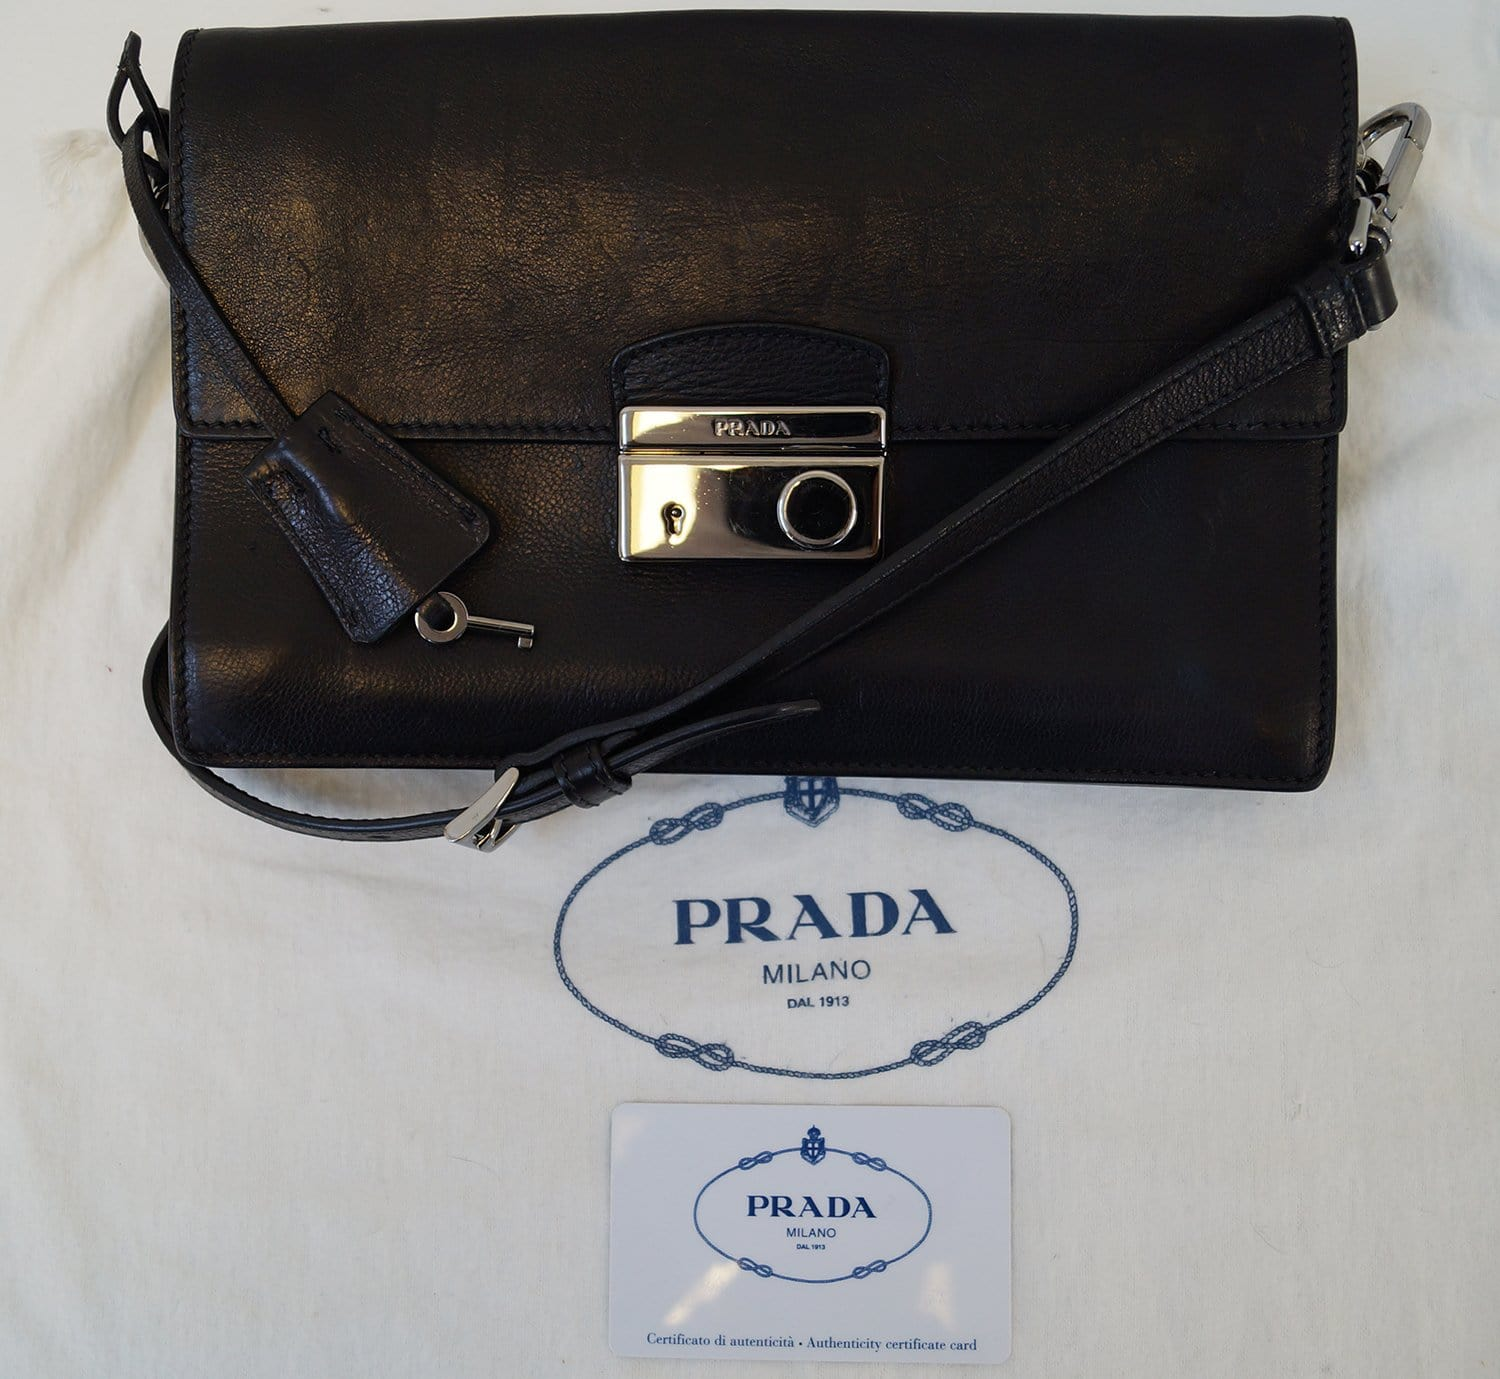 a7039cb8467e5 Authentic PRADA Saffiano Leather Black Crossbody Bag E3238